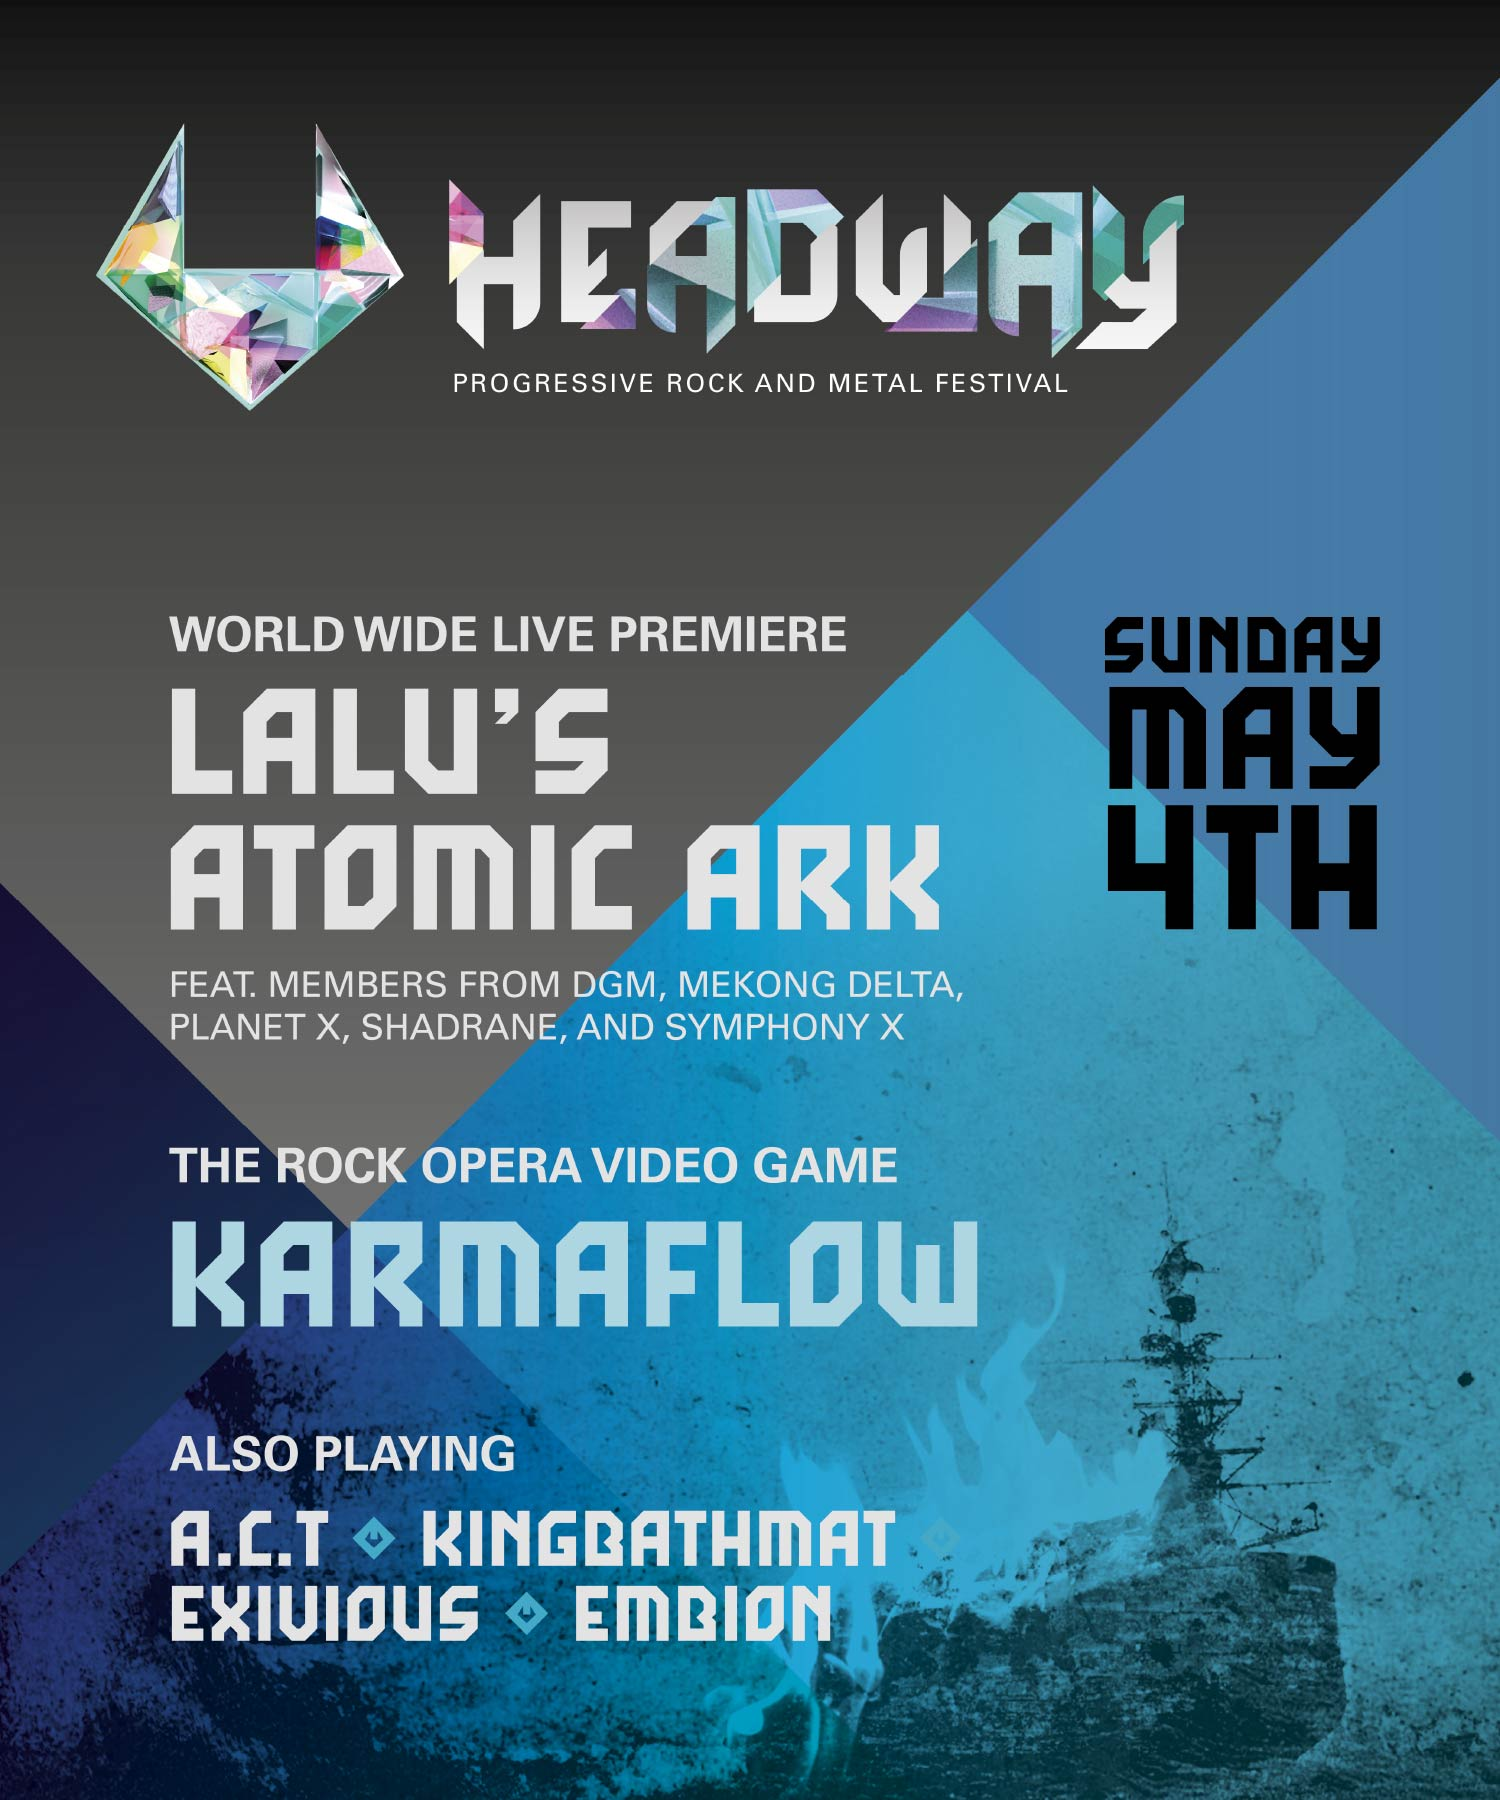 Headway fest poster M-space